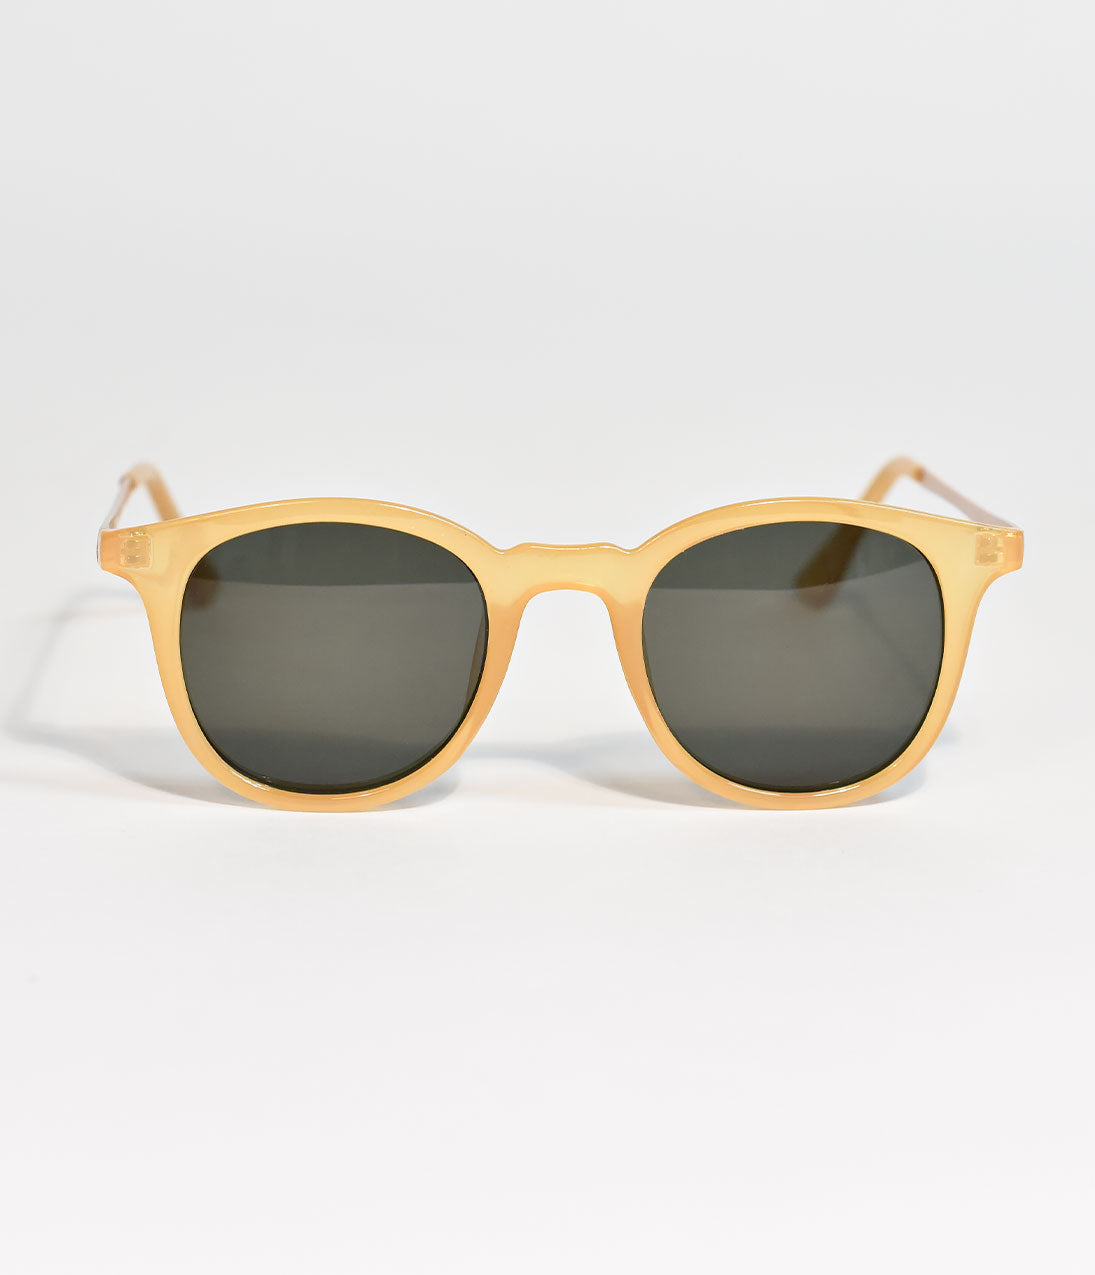 Yellow Inline Retro Sunglasses Flirty frames come in yellow, darling! These A.J. Morgan Yellow Inline sunglasses will pair perfectly with your modern or retro look. Rounded lenses and molded nose pads compliment the sophisticated strength of the metal arms in gold. Be sensational in your bold yellow statement. Staying inline was never appealing until now. ..Available while supplies last. | Yellow Inline Retro Sunglasses